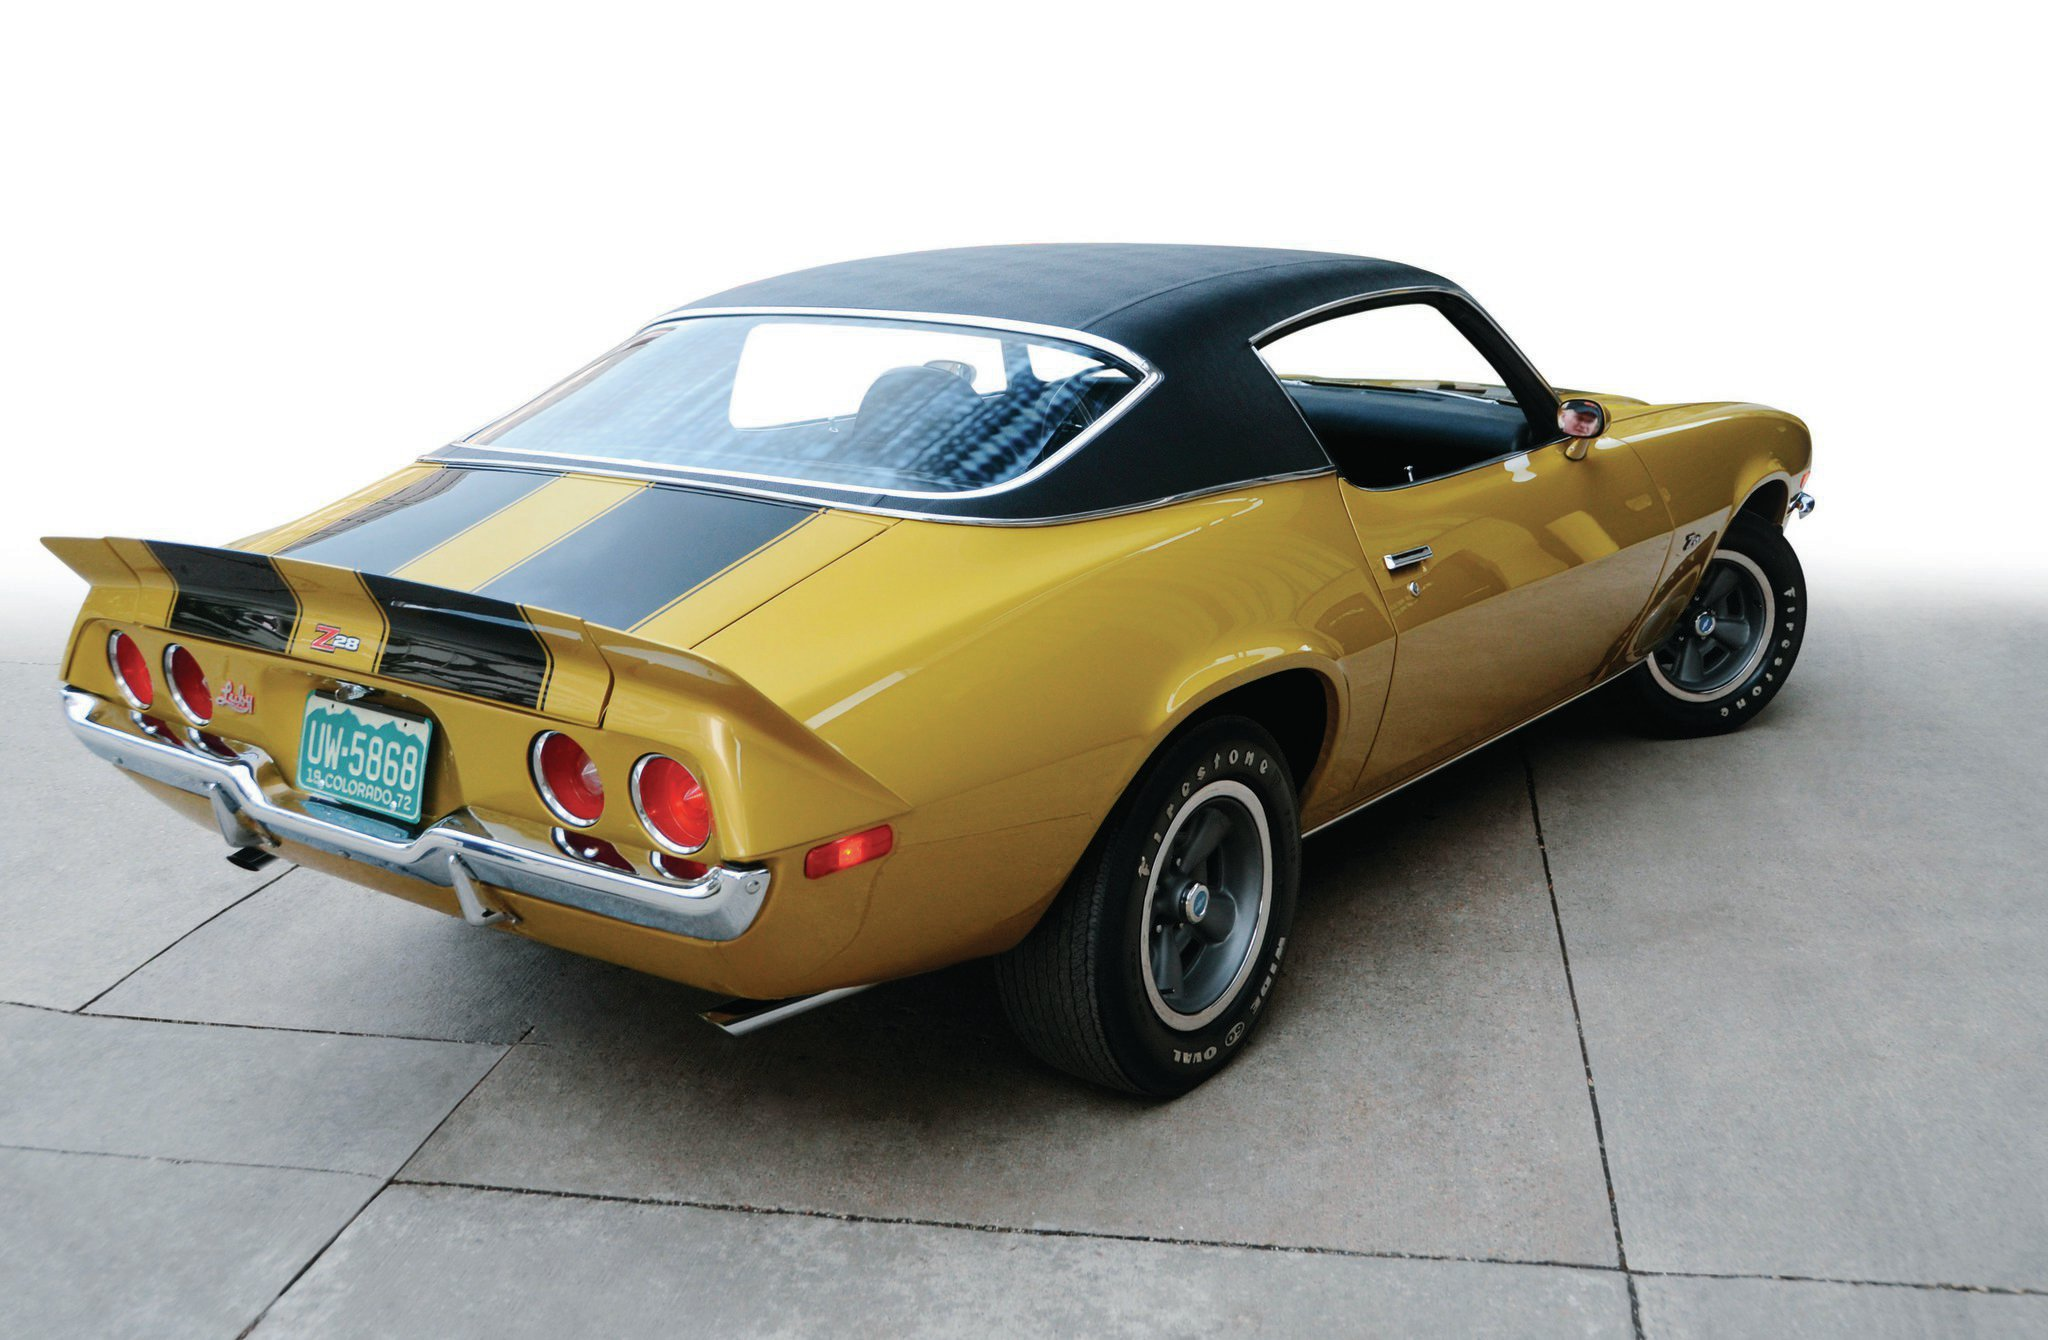 The rear spoiler on the Z28 was a three-piece affair, with the outer edges affixed to the quarter-panels and the centersection bolted to the trunk lid. The D80 spoiler package included both the front and rear spoilers.